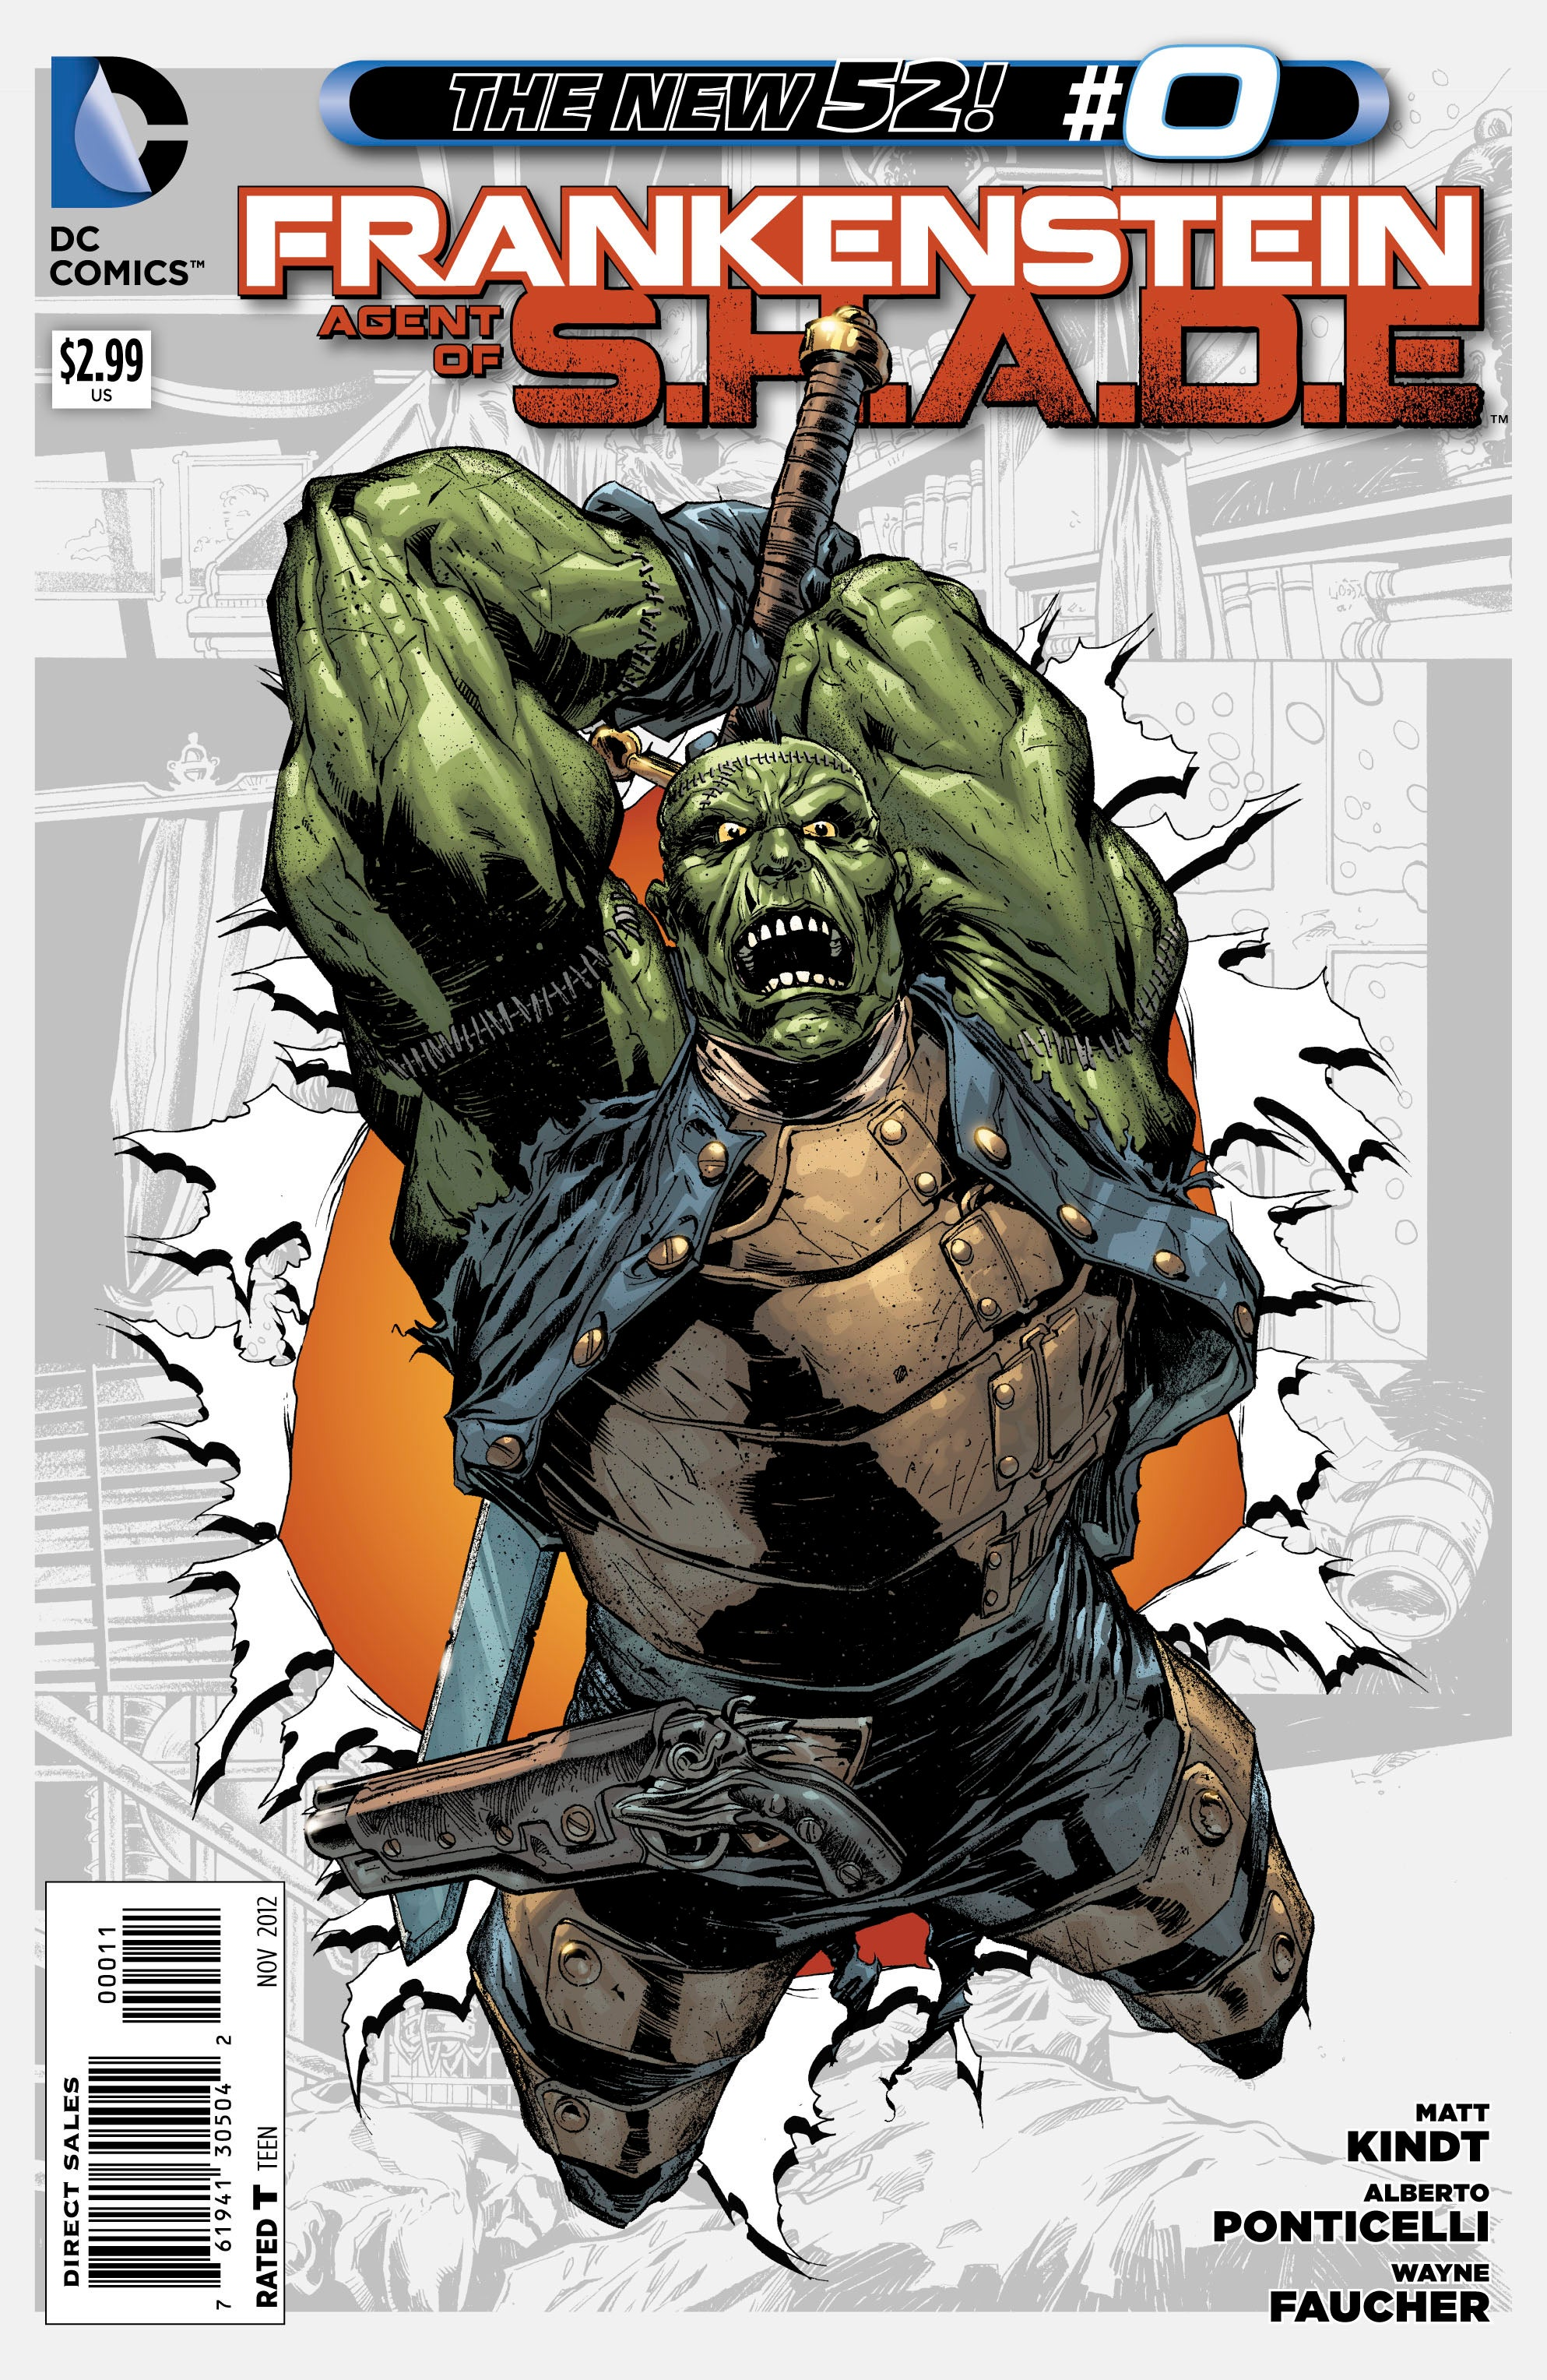 dc comics preview  frankenstein  agent of s h a d e   0